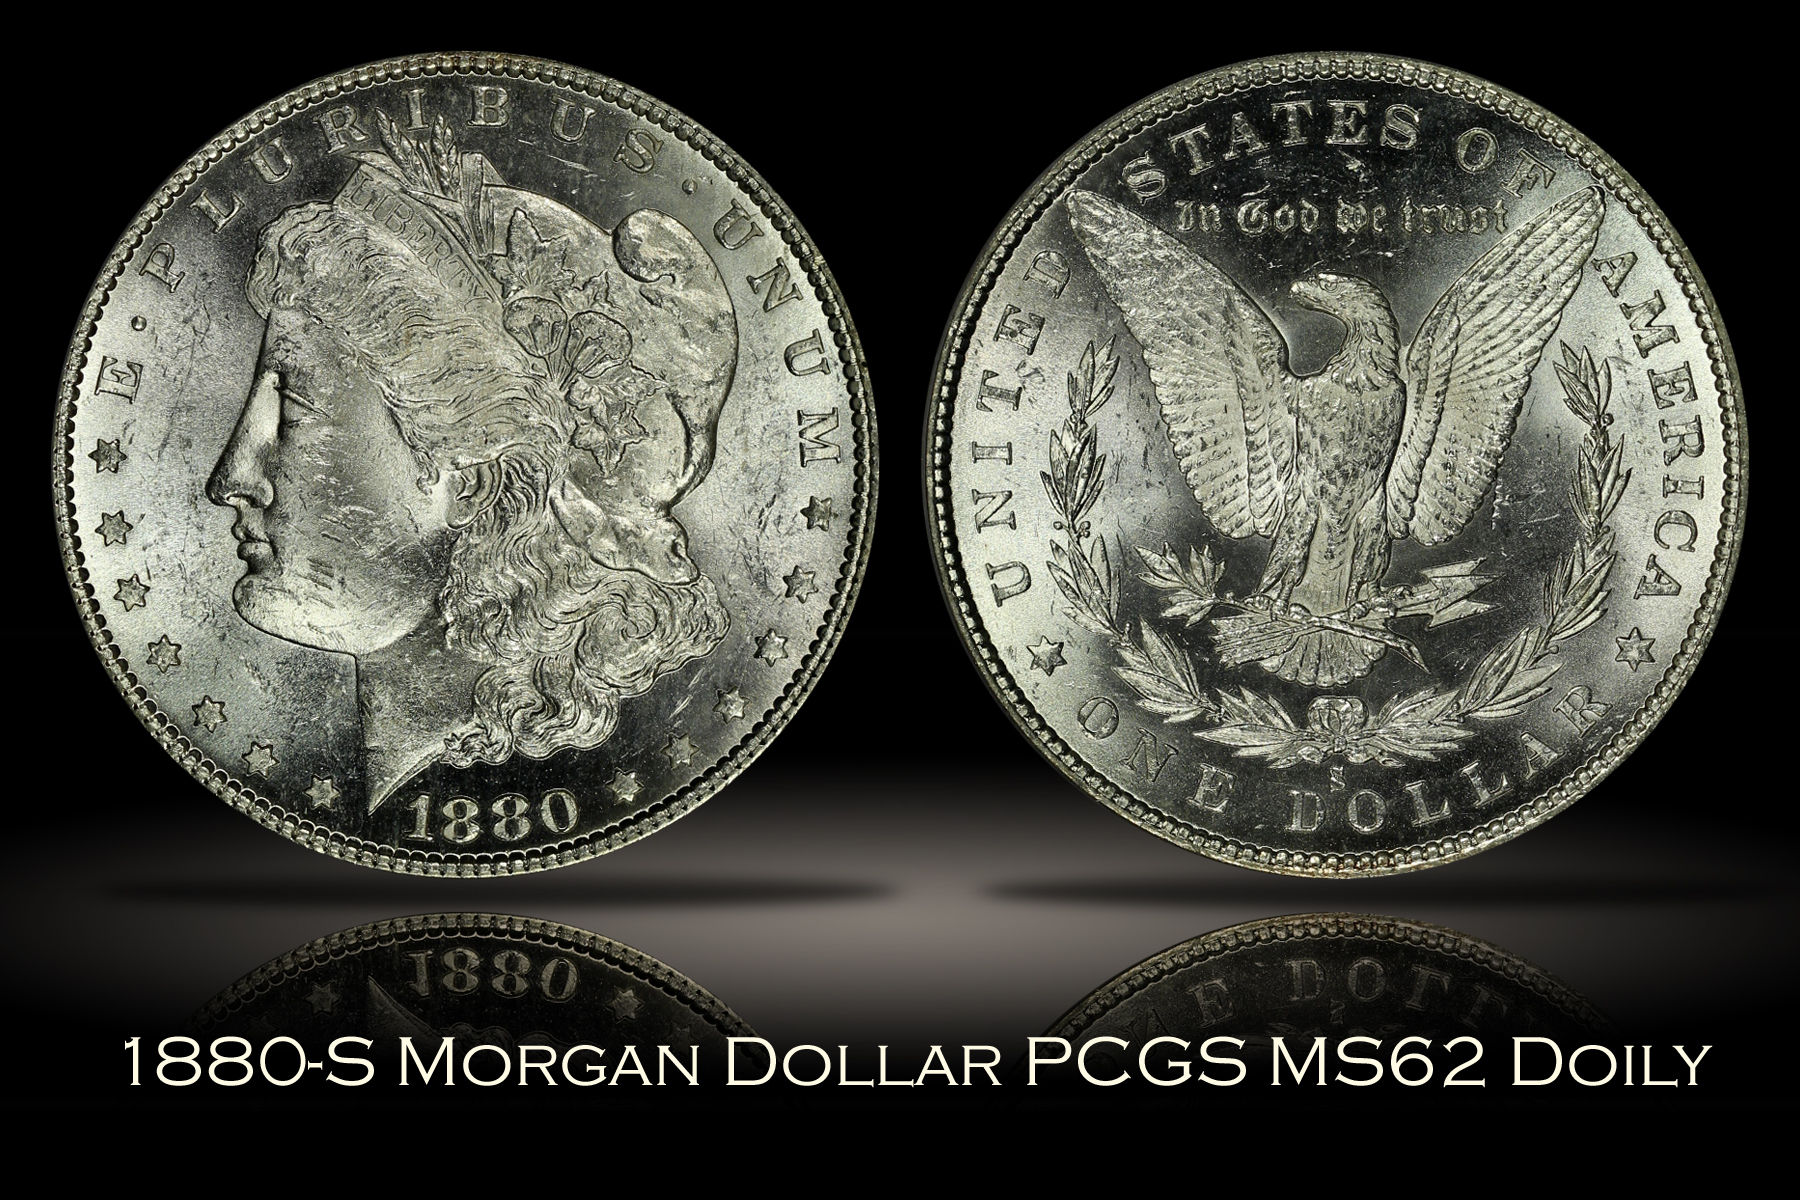 1880-S Morgan Dollar PCGS MS62 DOILY